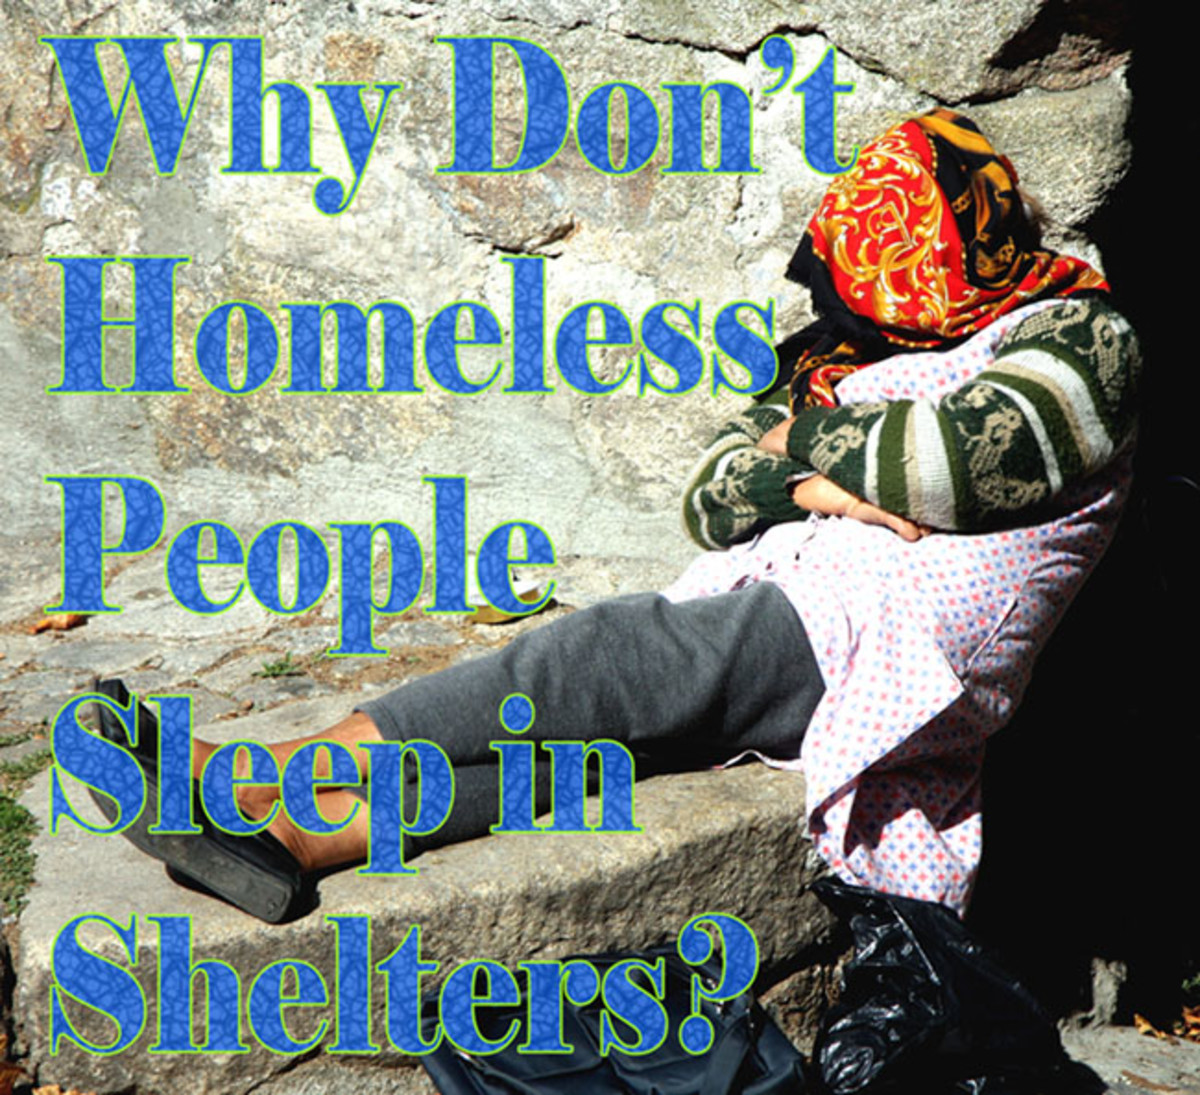 Why Don't Homeless People Use Shelters?